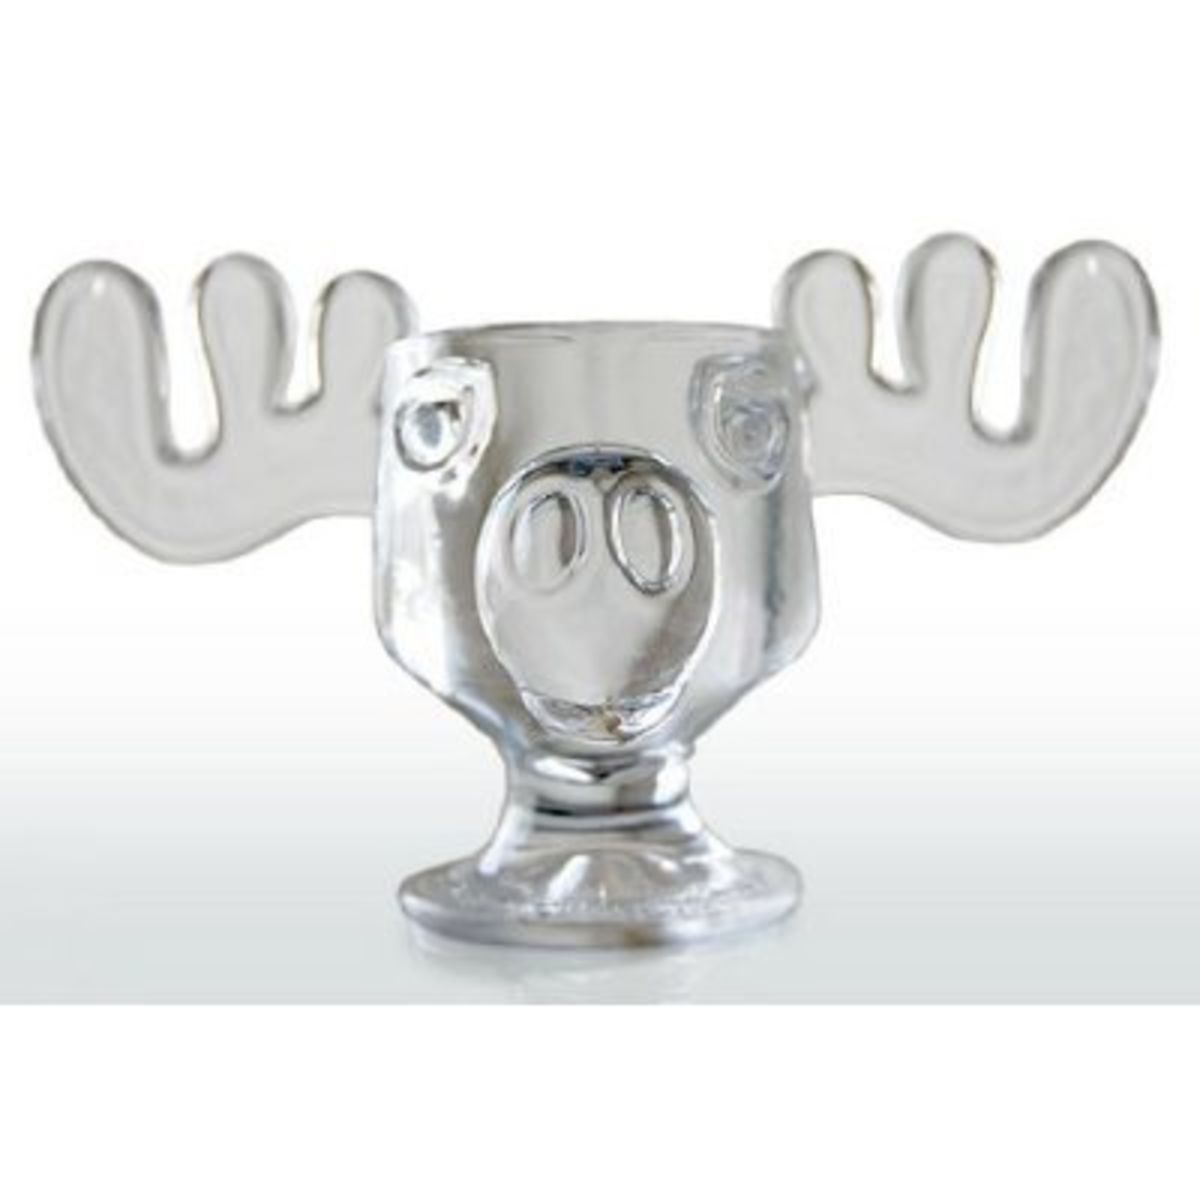 Headline for Christmas Moose Glasses Or Moose Mugs And Decorations From Christmas Vacation